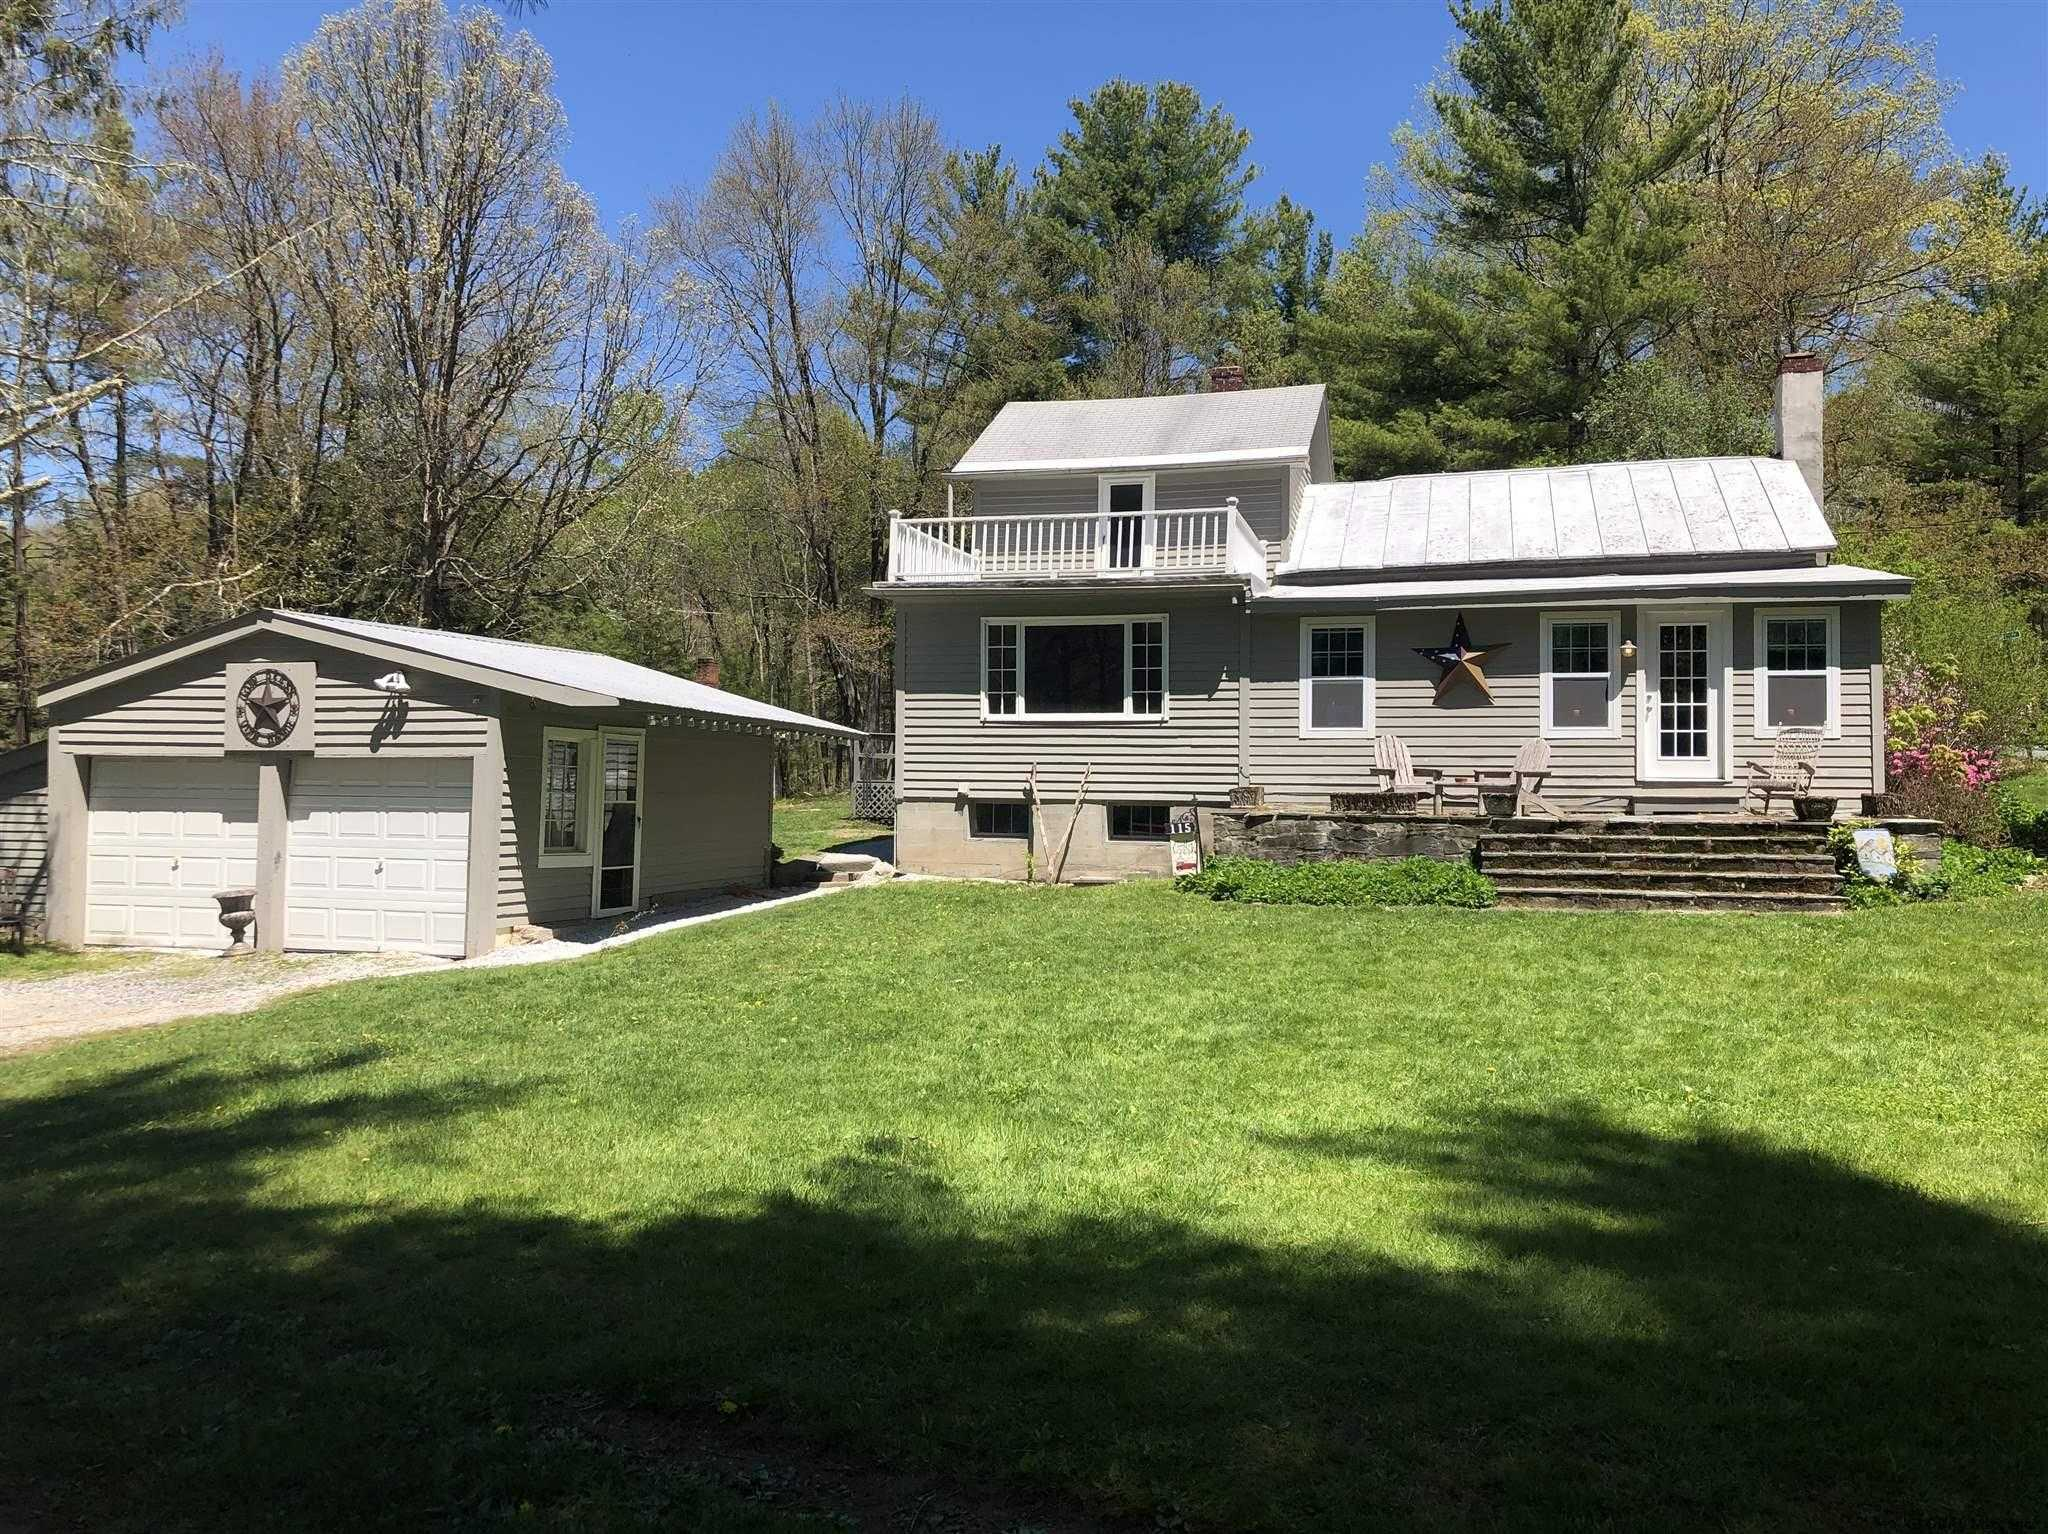 $200,000 - 4Br/2Ba -  for Sale in Stephentown